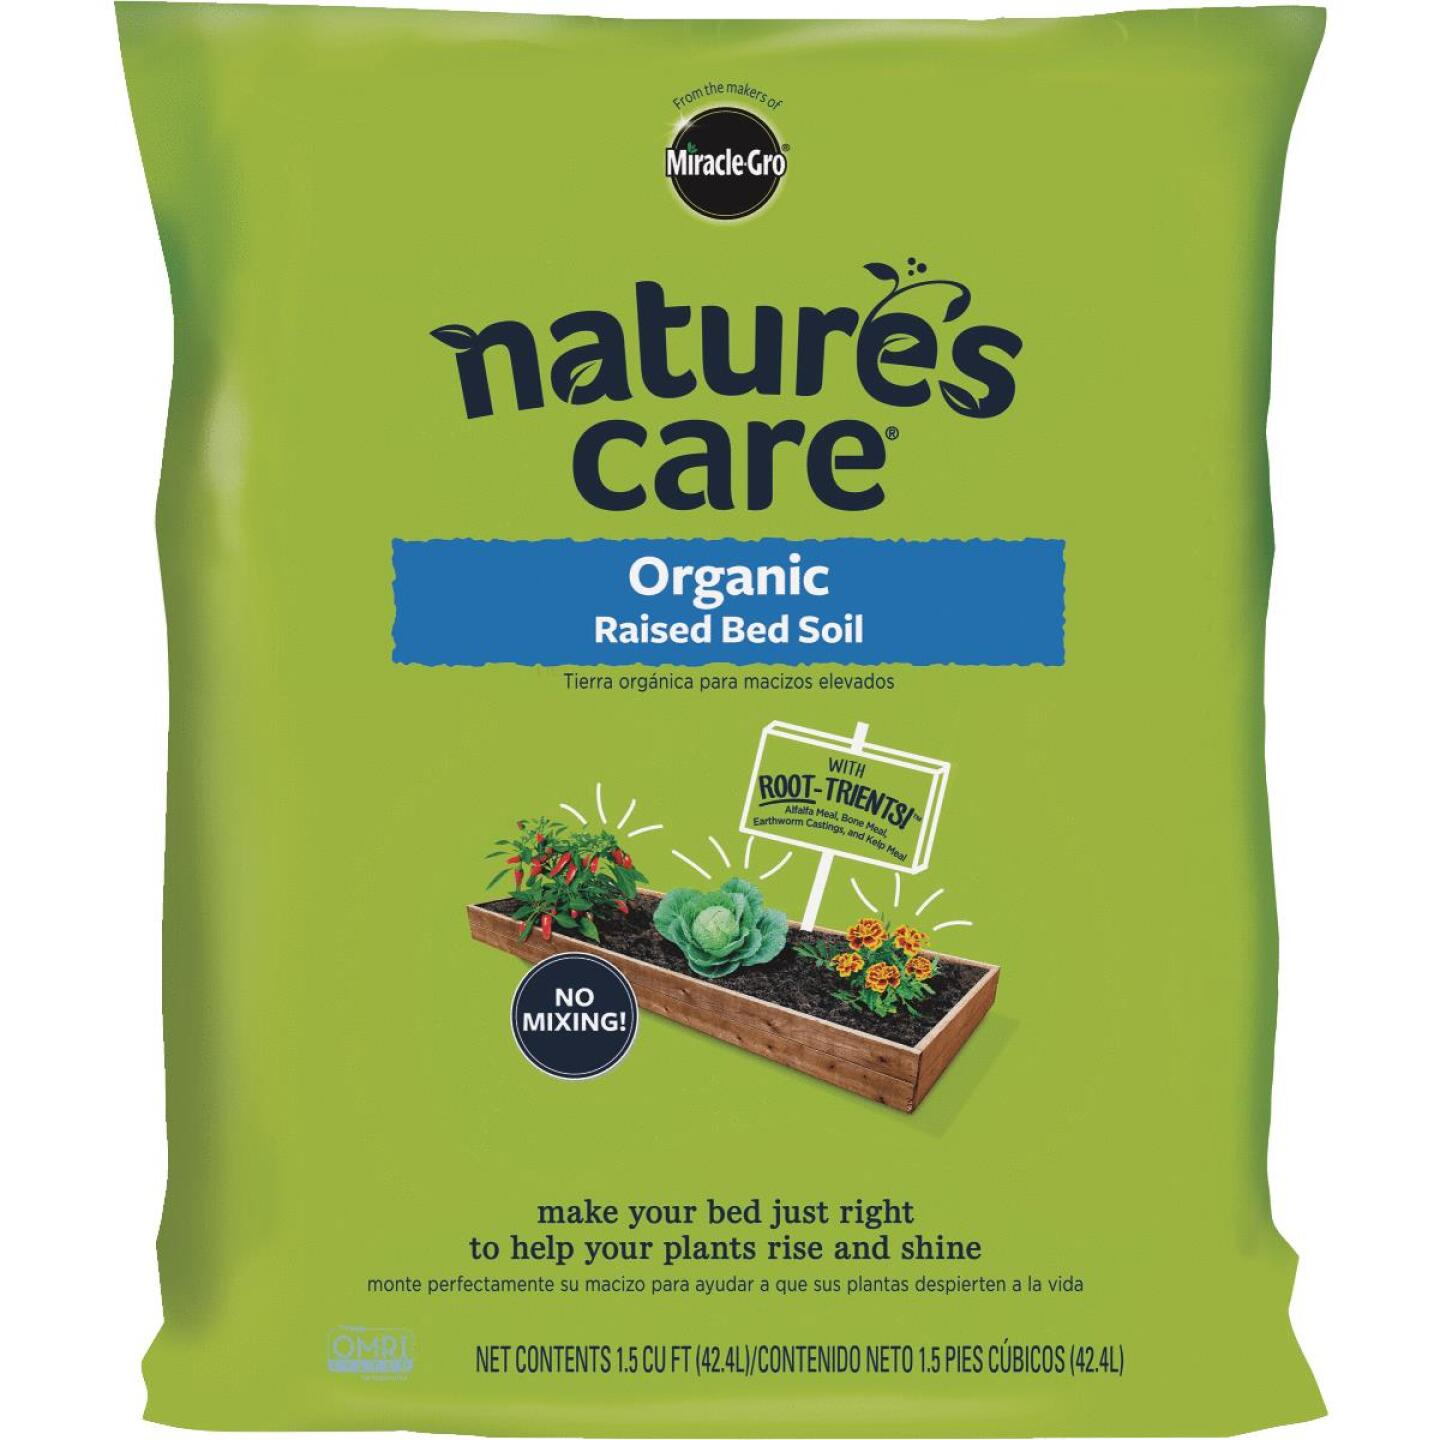 Miracle-Gro Nature's Care 1.5 Cu. Ft. Raised Bed Organic Garden Soil Image 1